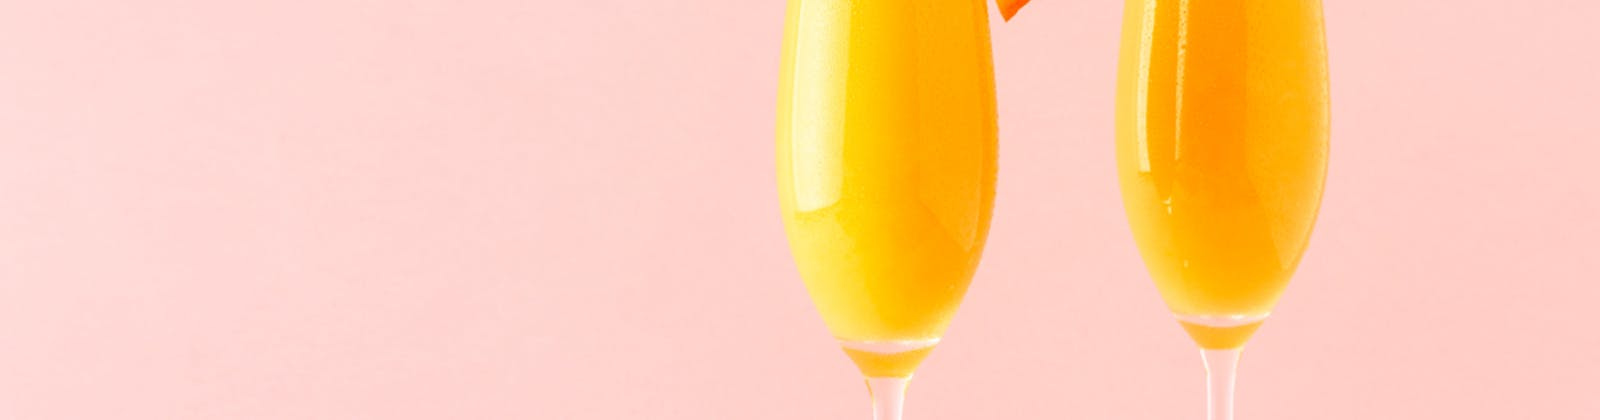 mimosas on a pink background